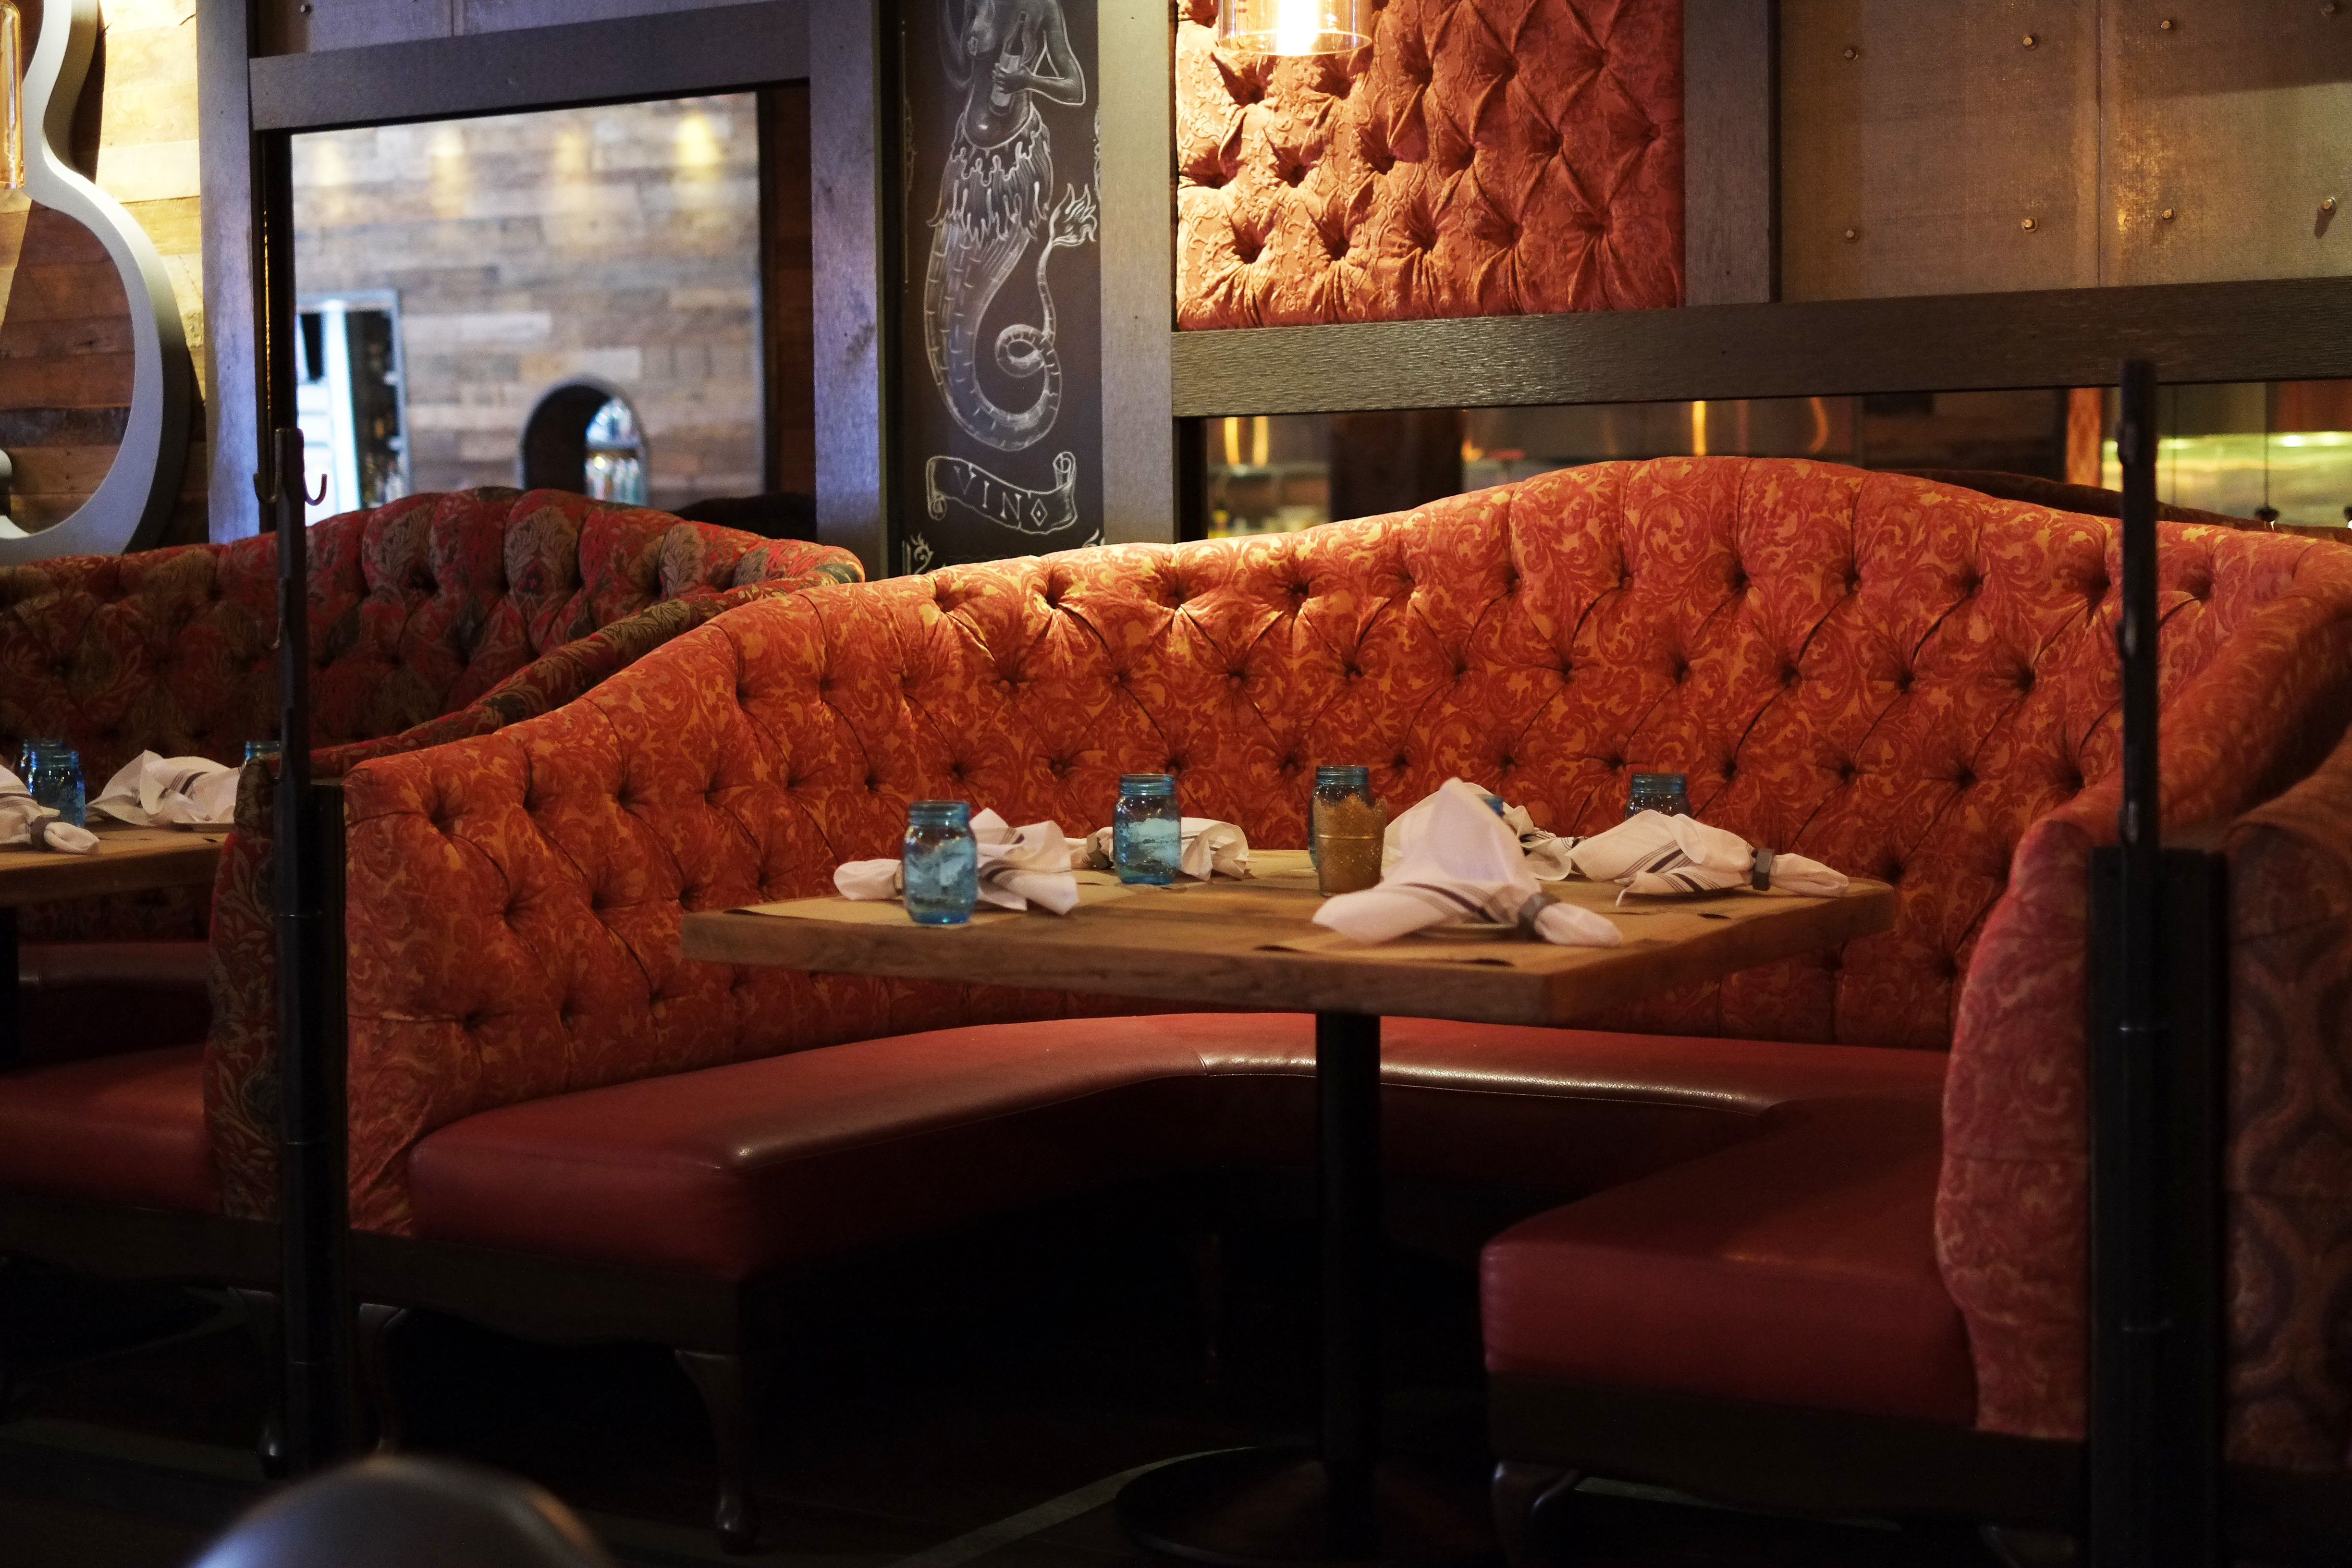 Design furniture restaurant lounge